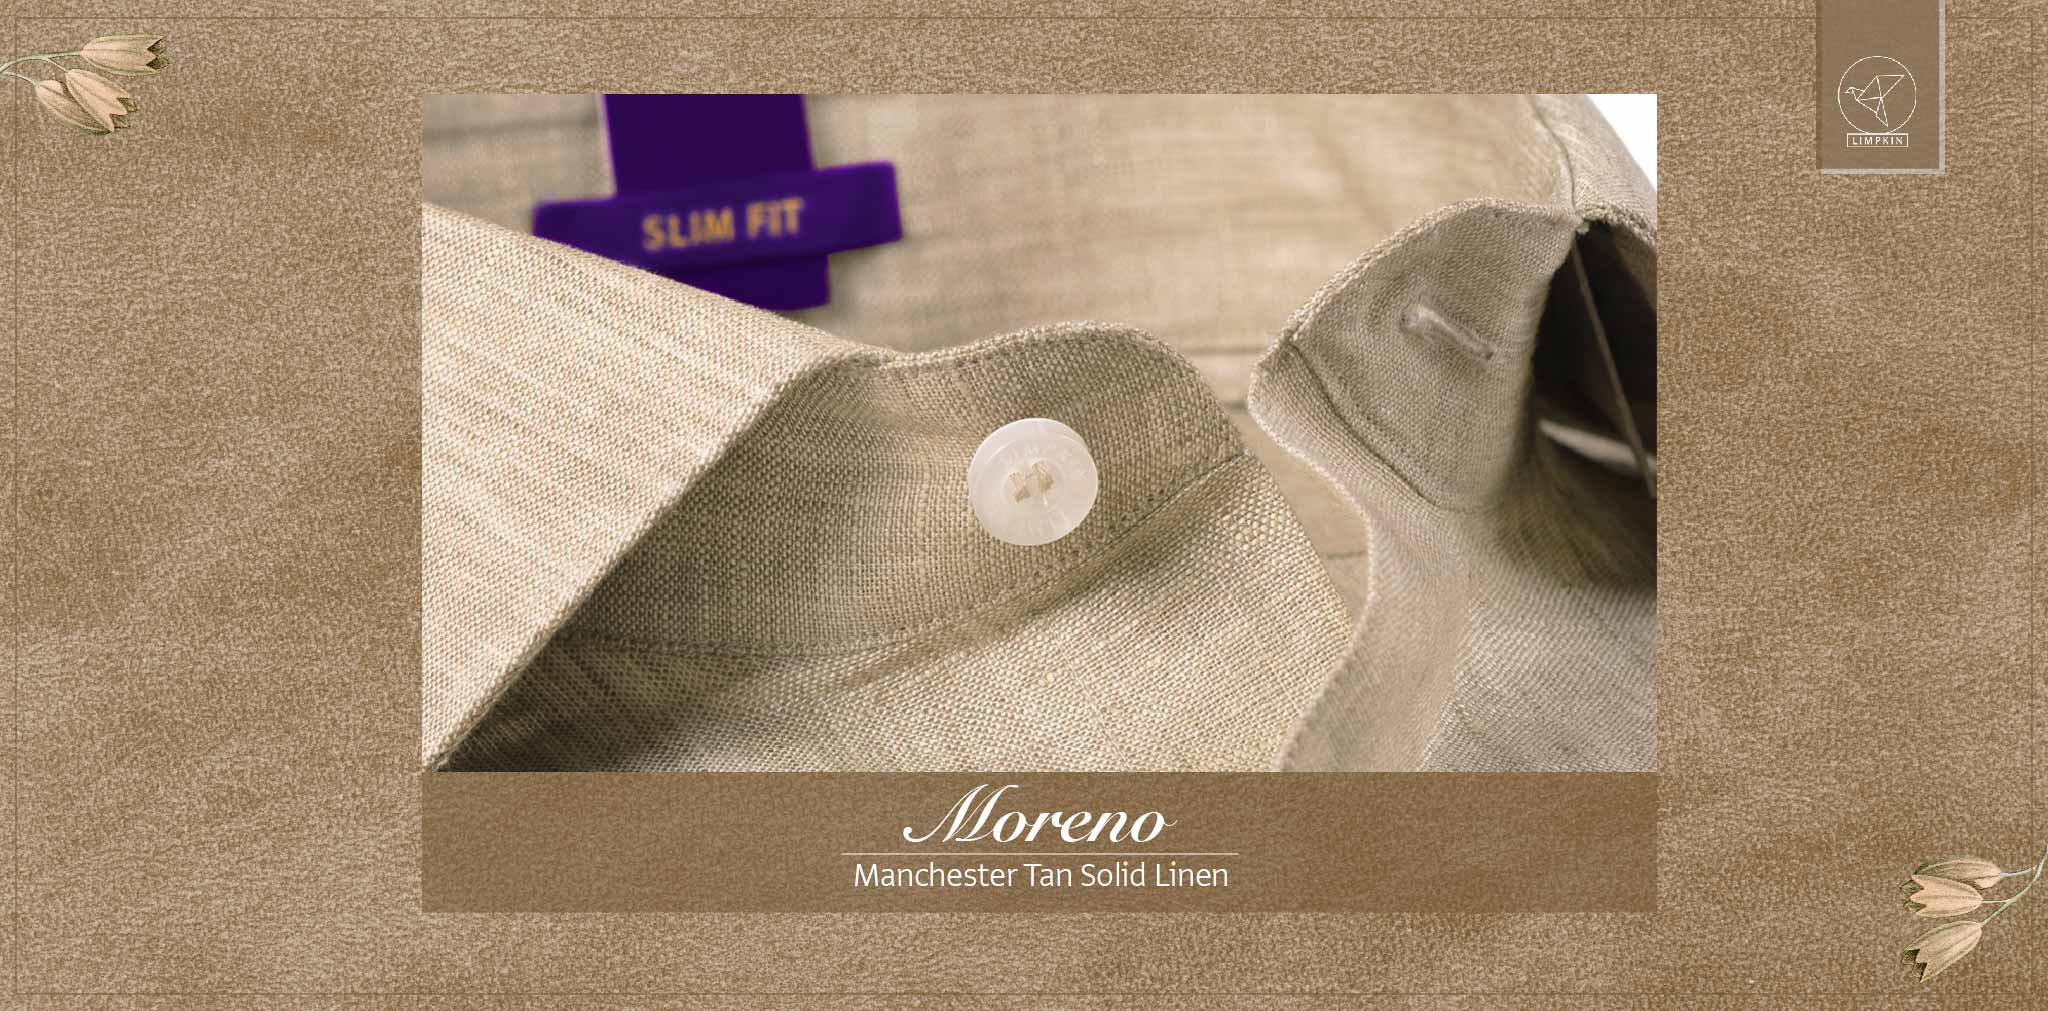 Moreno- Manchester Tan Solid Linen- 66's Lea Pure Luxury Linen- Delivery from 19th April - Banner